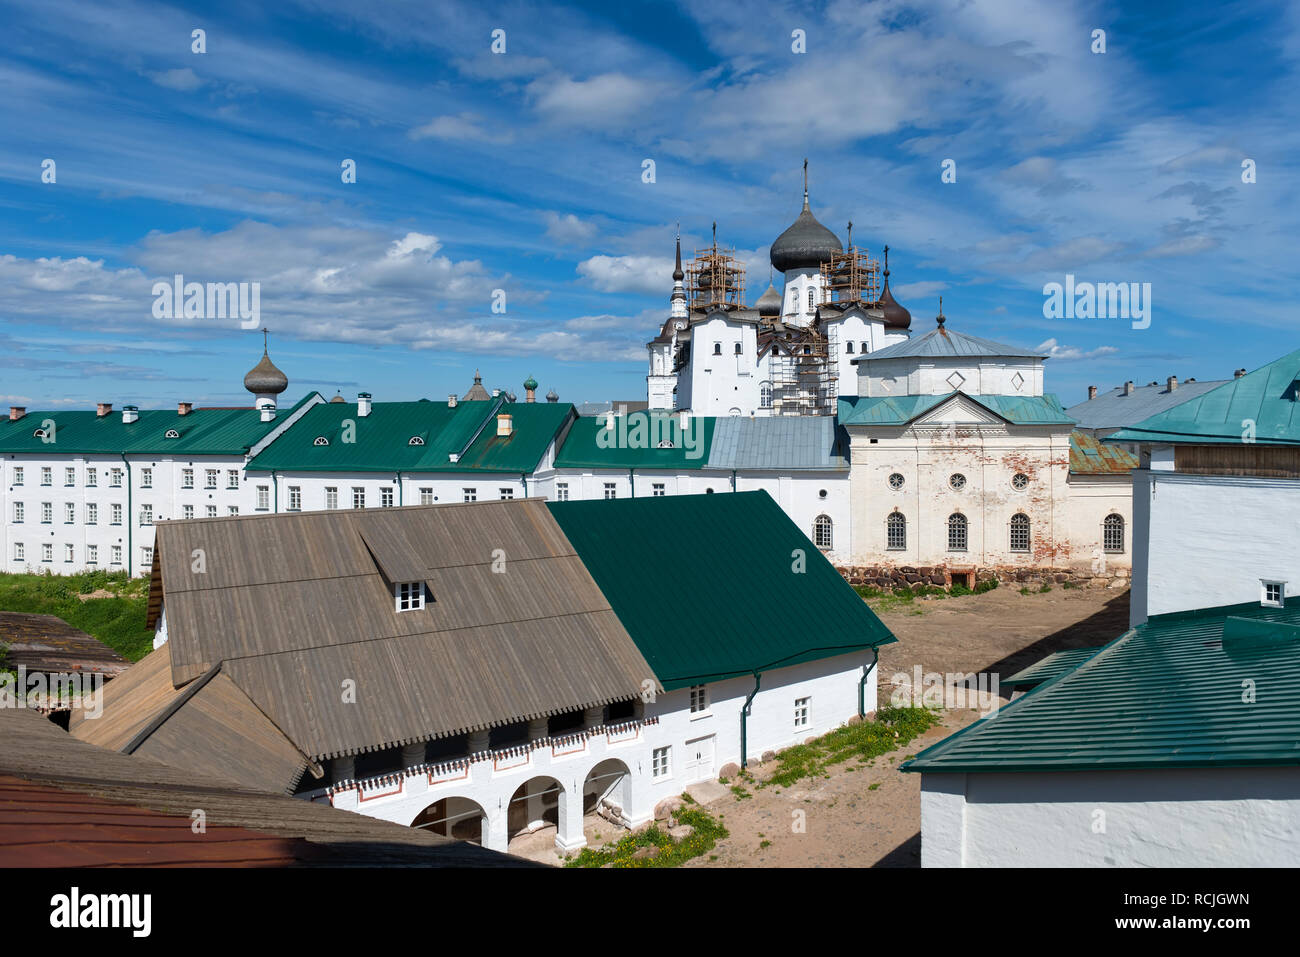 SOLOVKI, REPUBLIC OF KARELIA, RUSSIA - JUNE 27, 2018: View of the mill and the church of Philip In the Spaso-Preobrazhensky Solovetsky Monastery. Russ Stock Photo